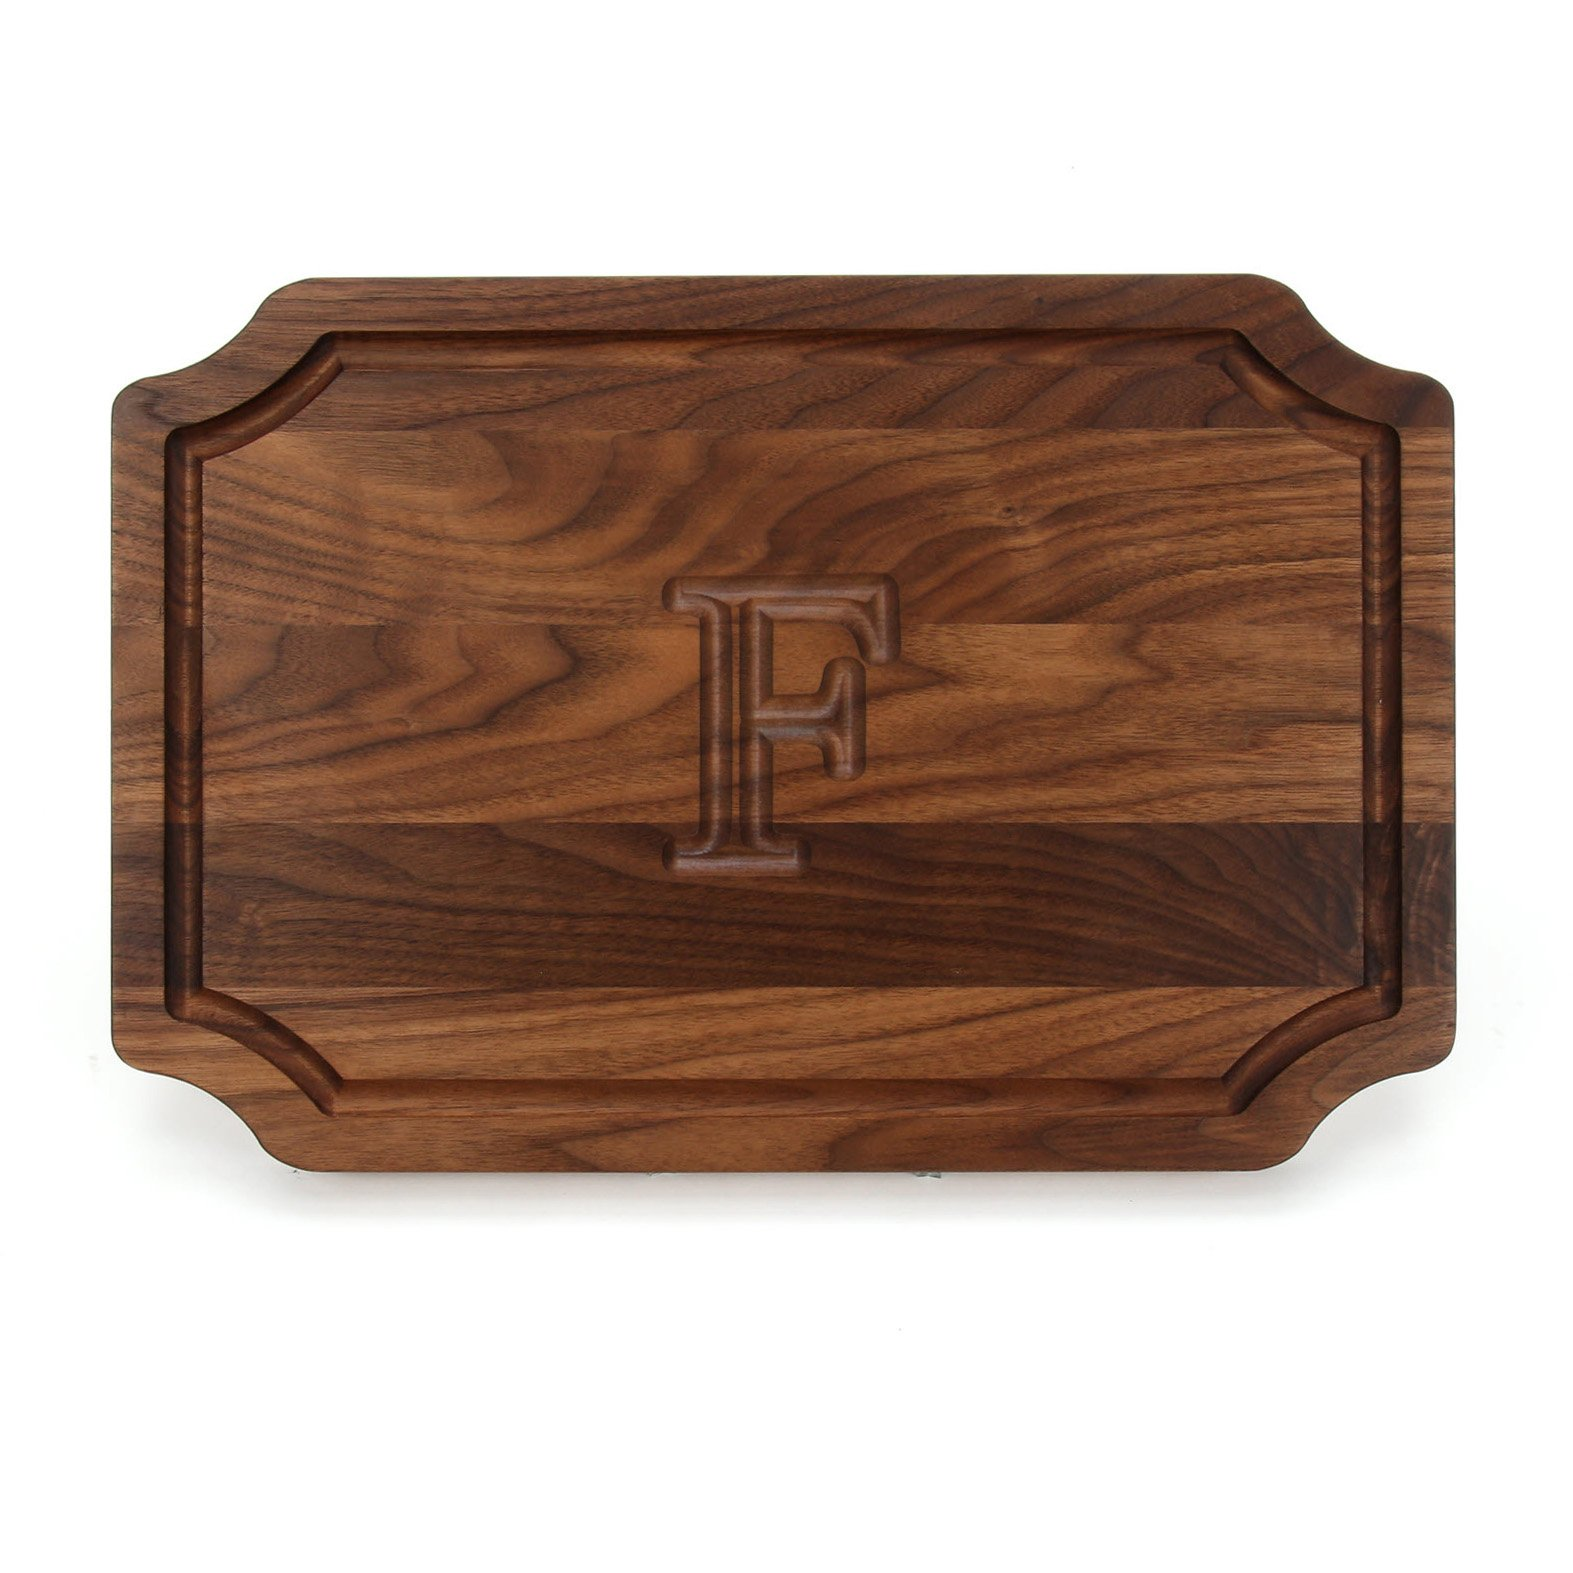 BigWood Boards W310-F Cutting Board, Personalized Cutting Board, Large Cheese Board, Walnut Wood Cutting Board and Serving Tray, ''F''